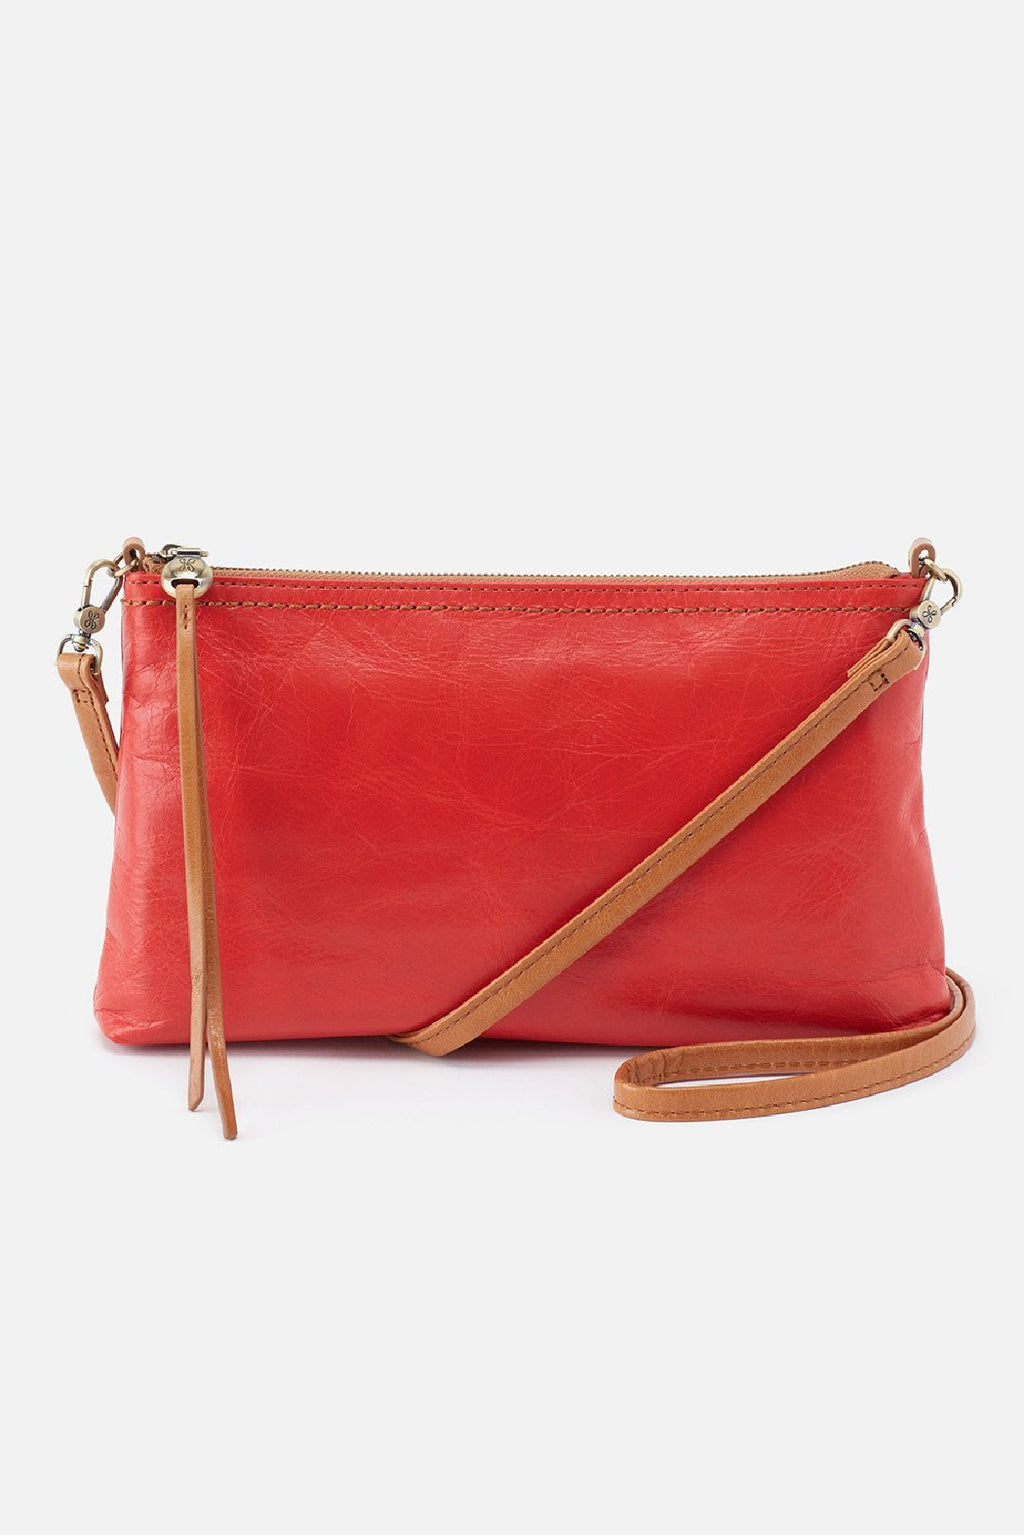 Hobo Darcy Convertible Clutch - Rio